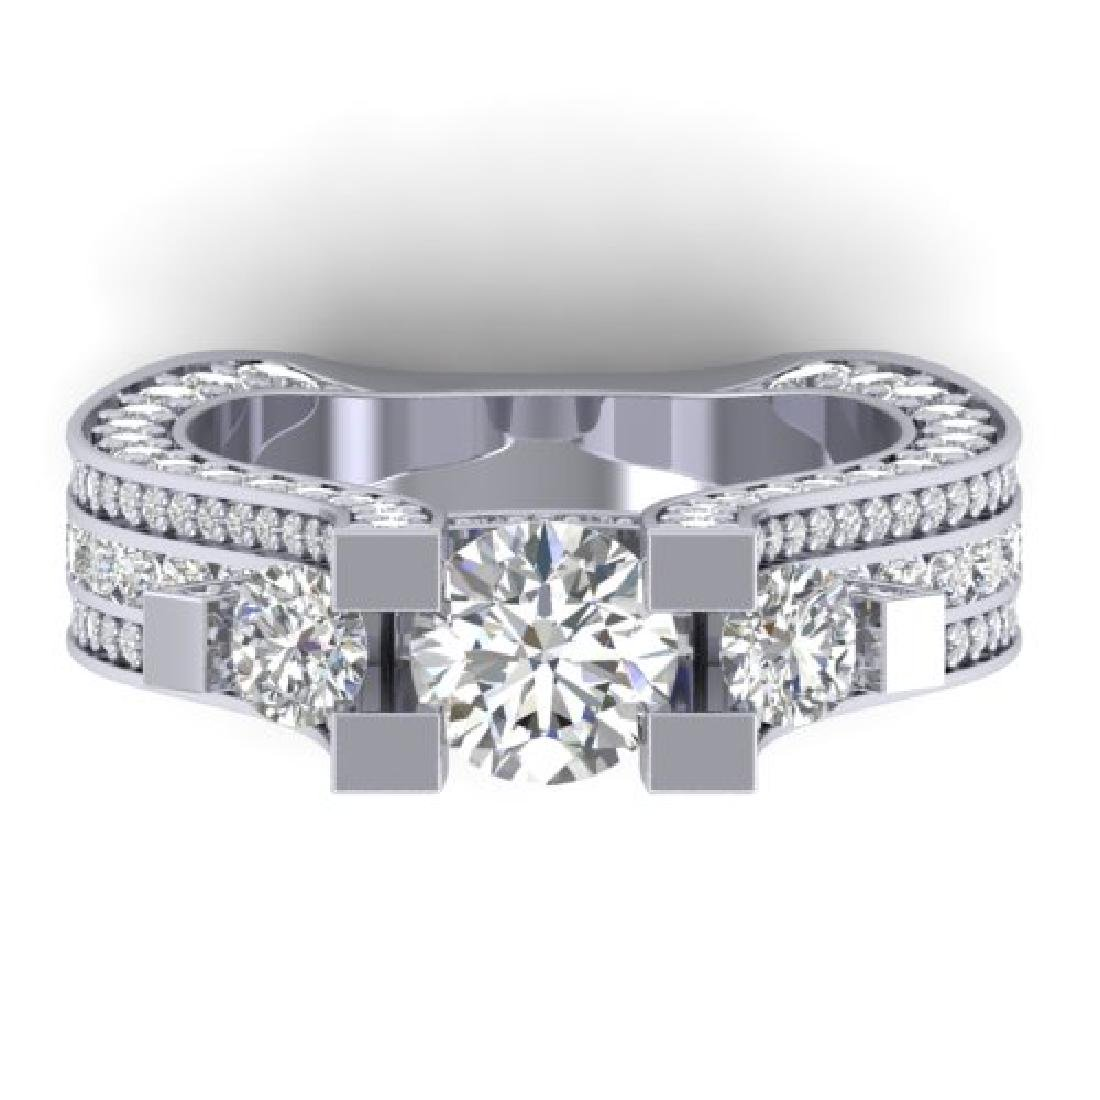 5.5 CTW Certified VS/SI Diamond Art Deco 3 Stone Micro